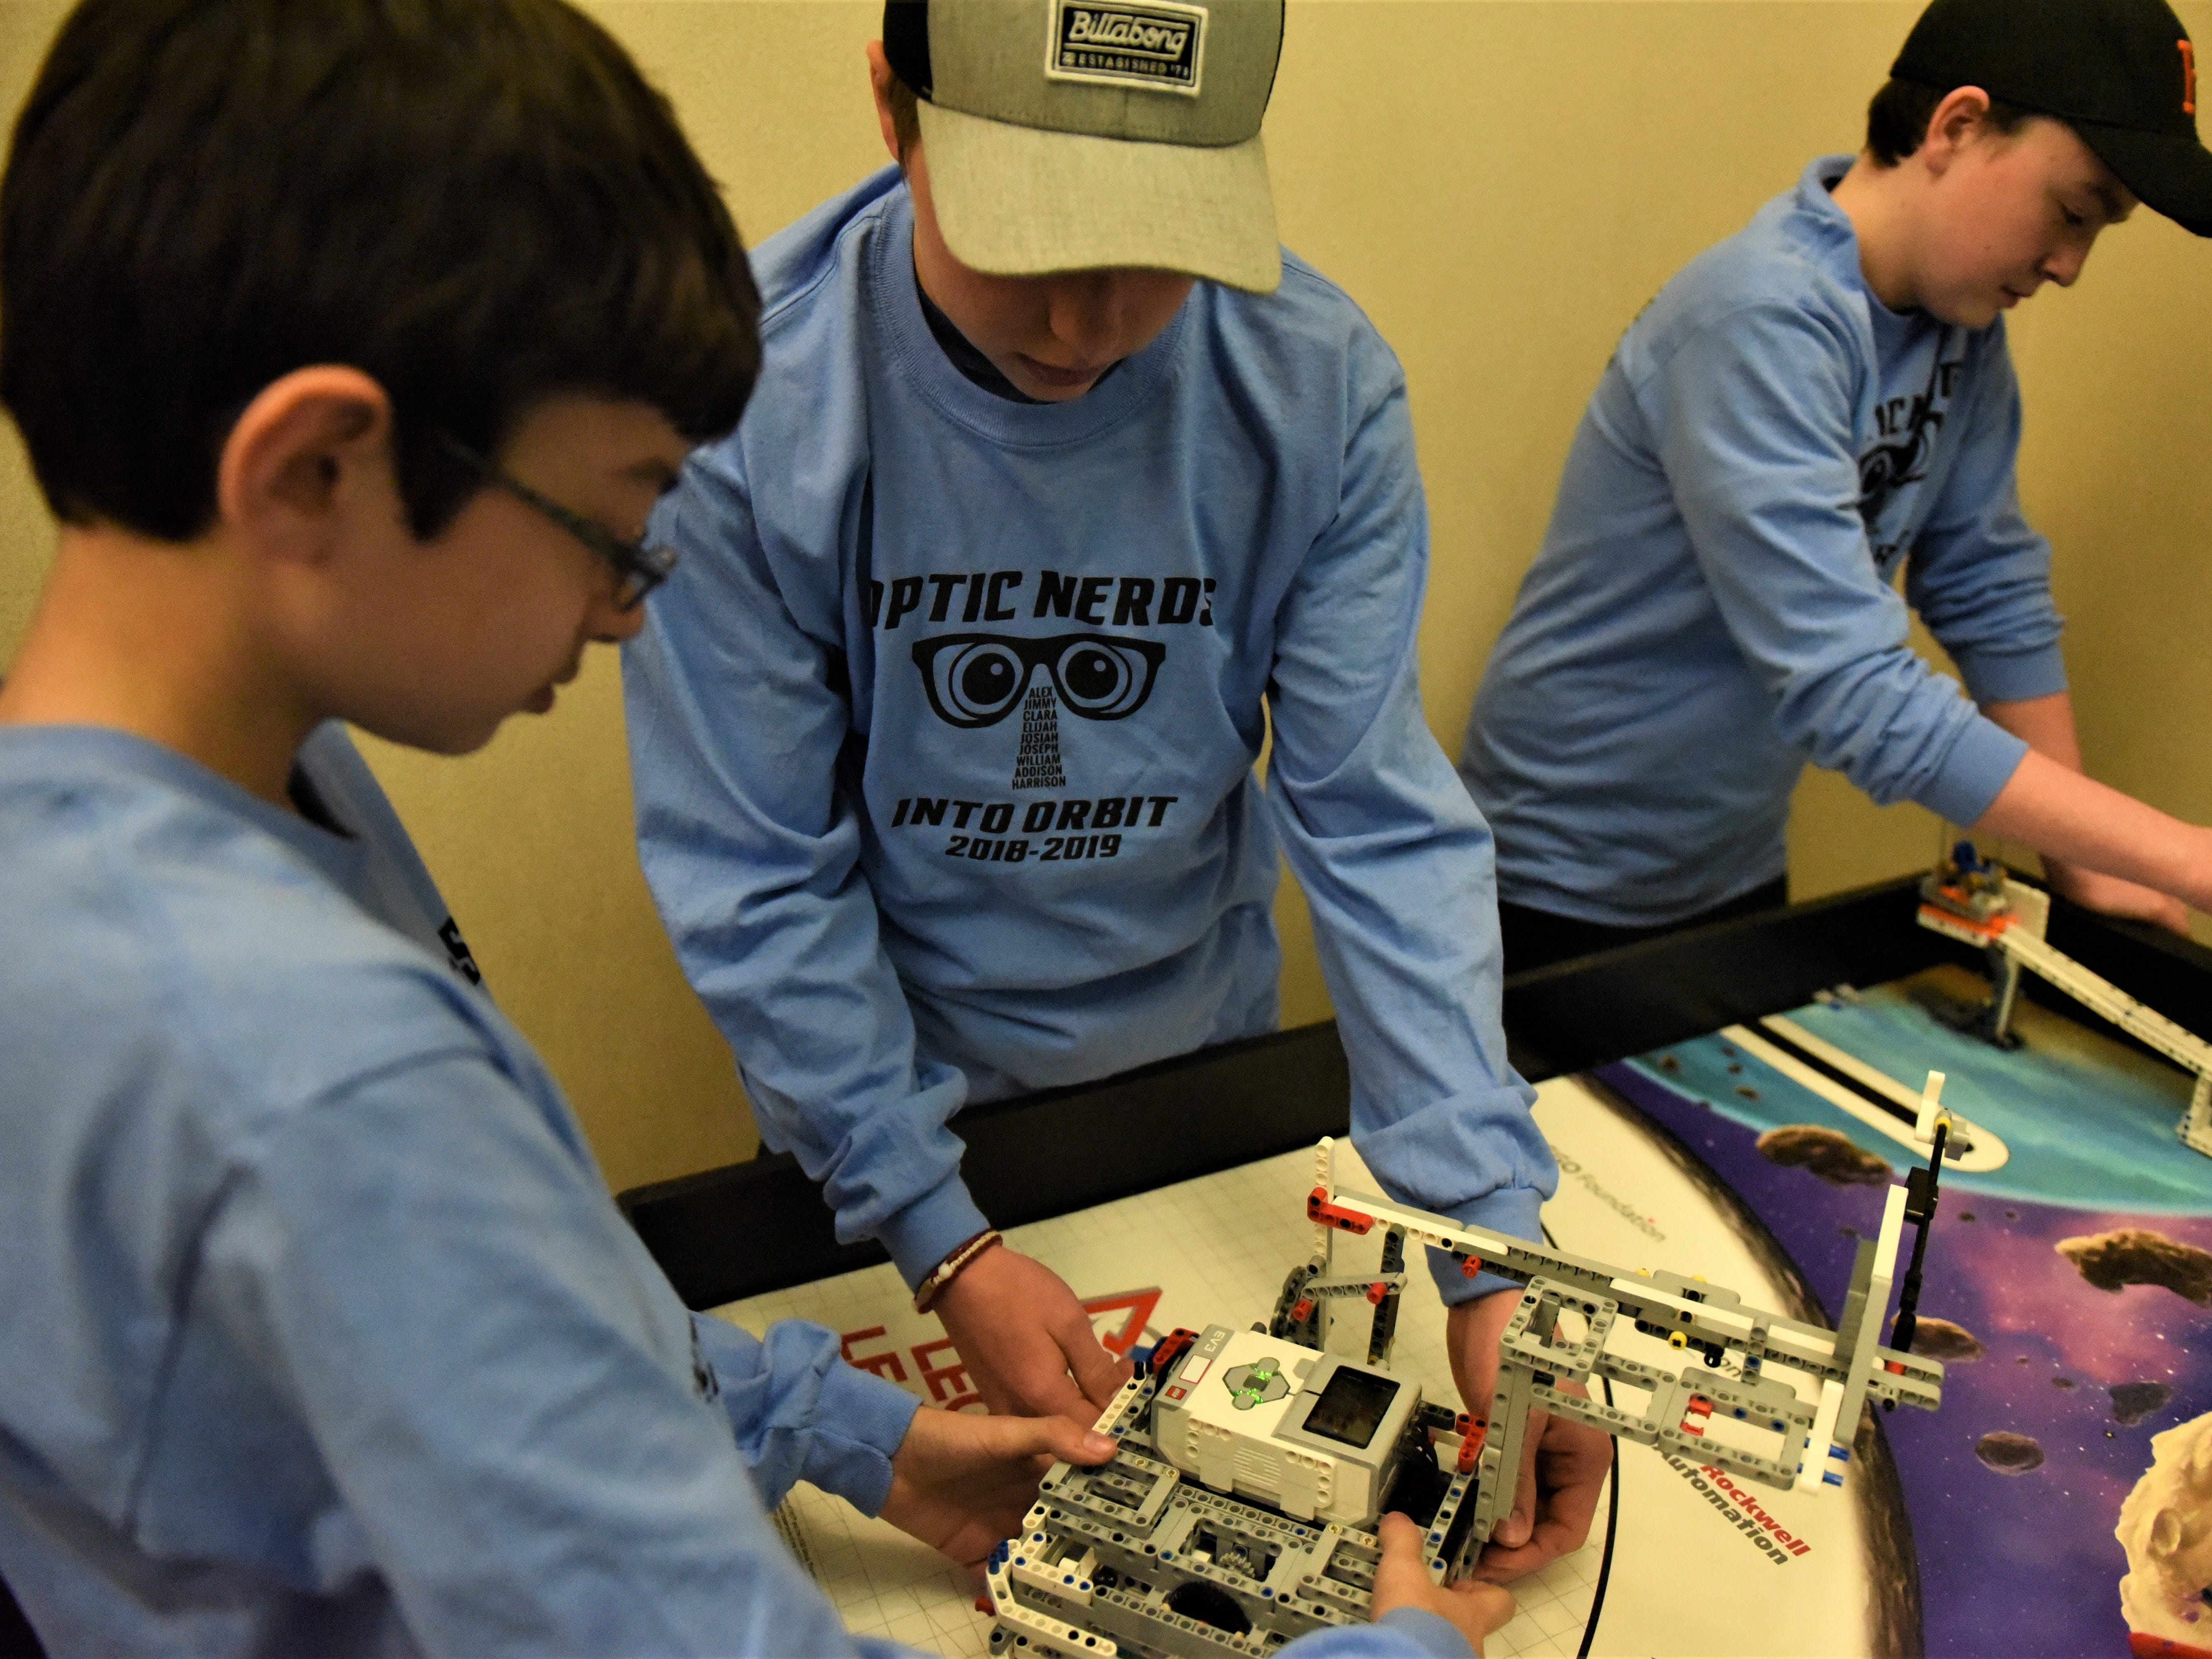 From left, Jimmy Himmerlein, 13, Elijah Morton, 13, and Josiah Brower, 13, adjust their robot for an upcoming robotics competition at the Penn State Berks campus on Jan 26.